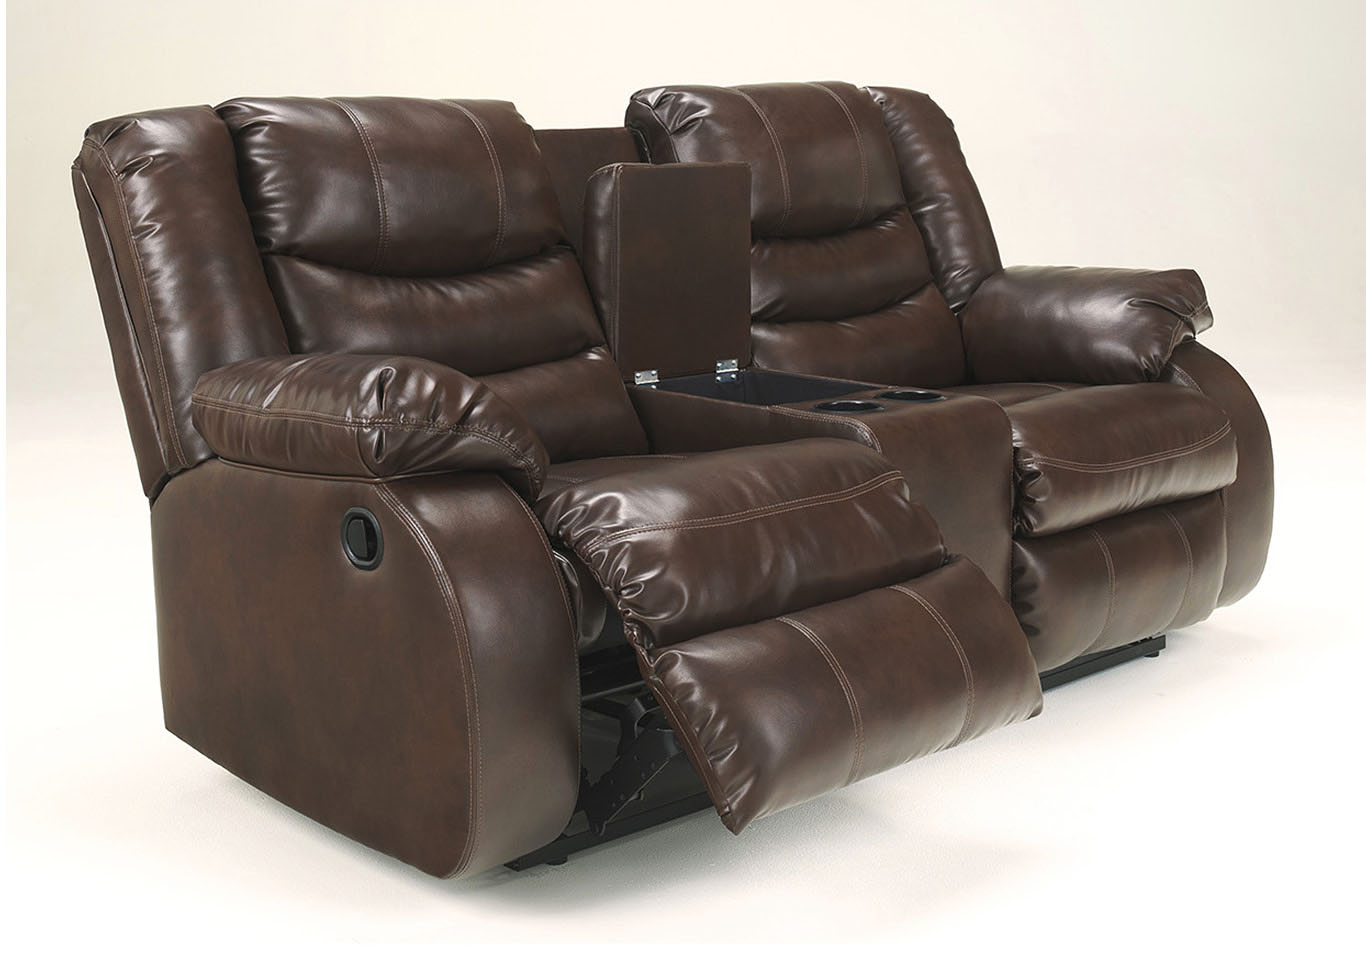 Linebacker DuraBlend Espresso Double Reclining Loveseat w/Console,Signature Design by Ashley